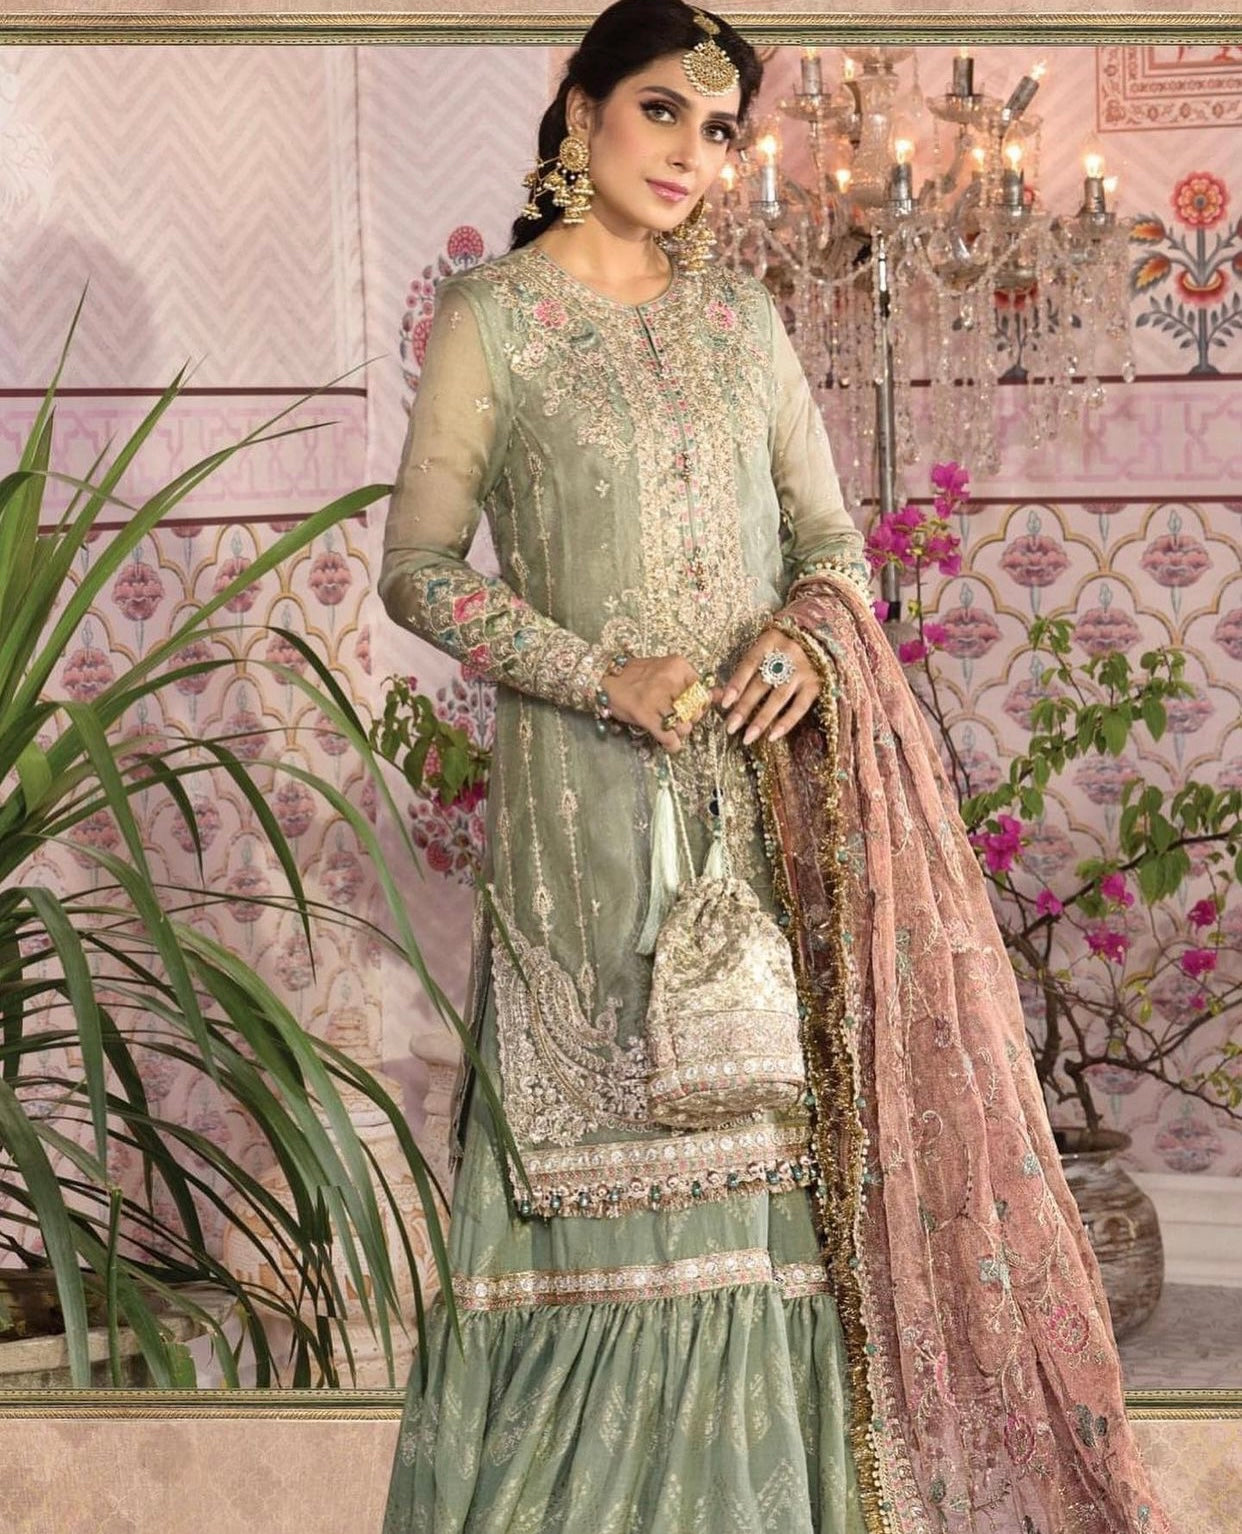 Maria B Chiffon Mbroidered Collection 2021 Pistachio & Salmon Pink BD-2205 Sharara suit